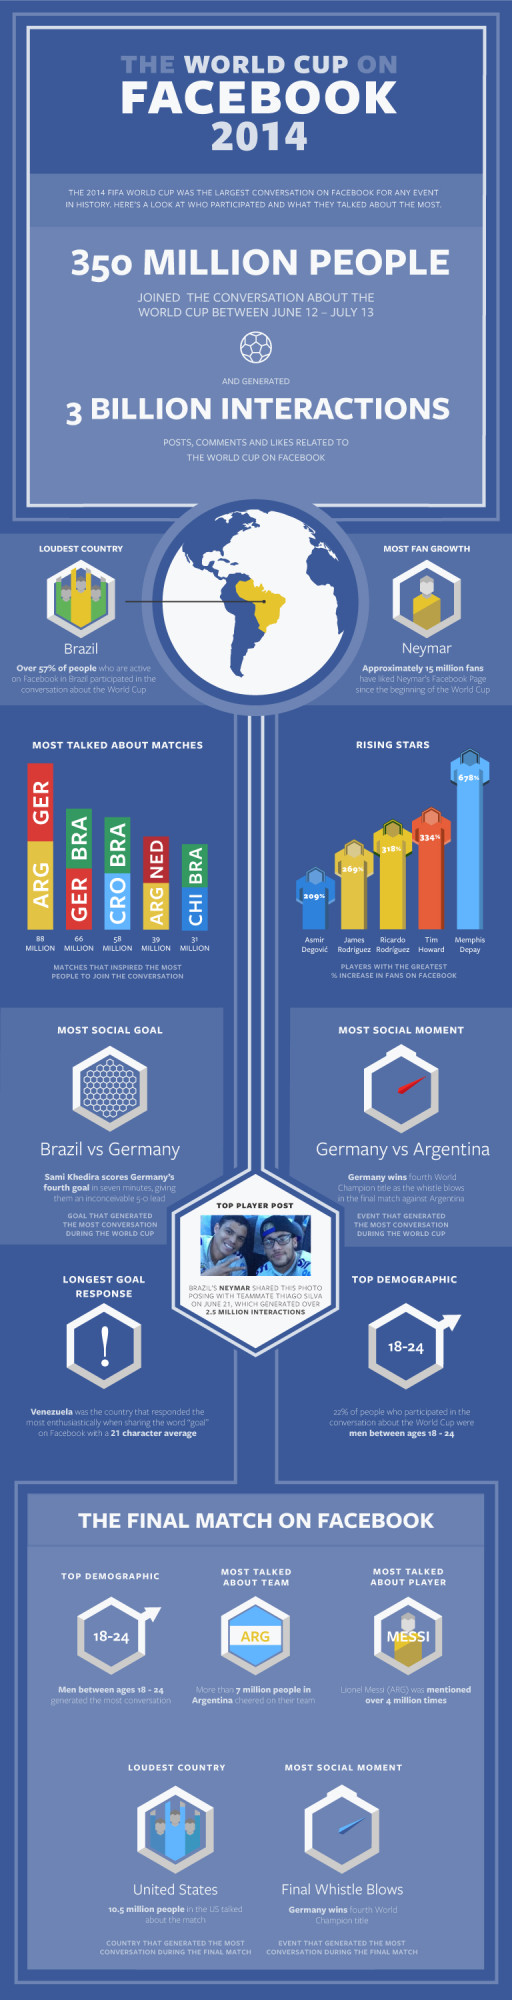 Facebook_World_Cup_Infographic-20014